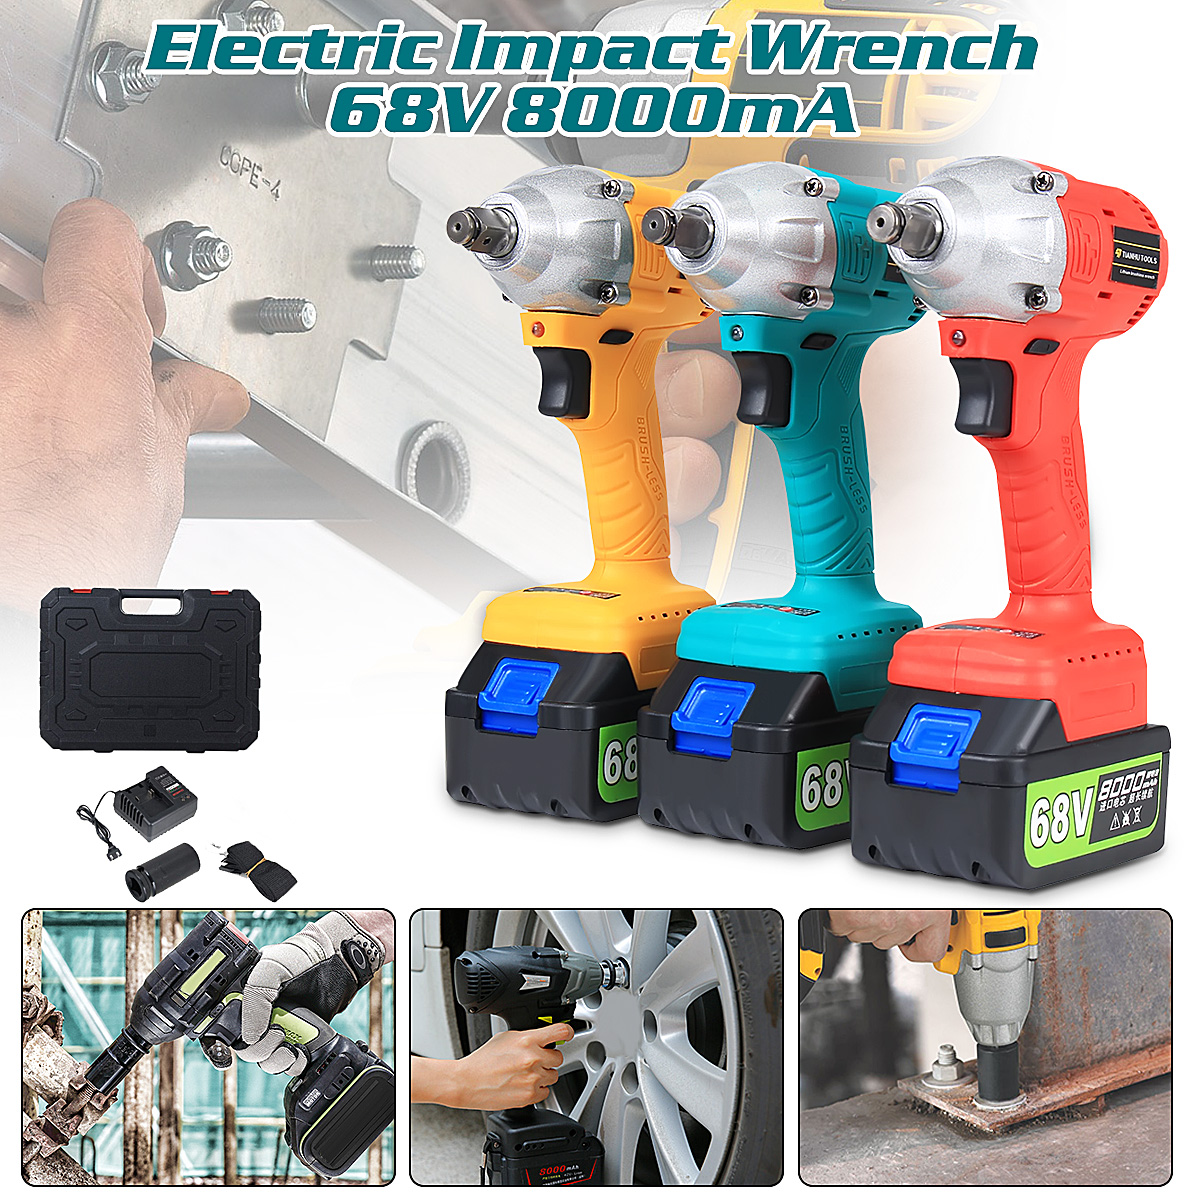 Brushless/ Cordless Electric Wrench Impact Socket Wrench 68V 8000mAh Li Battery Hand Drill Installation Power Tools цена